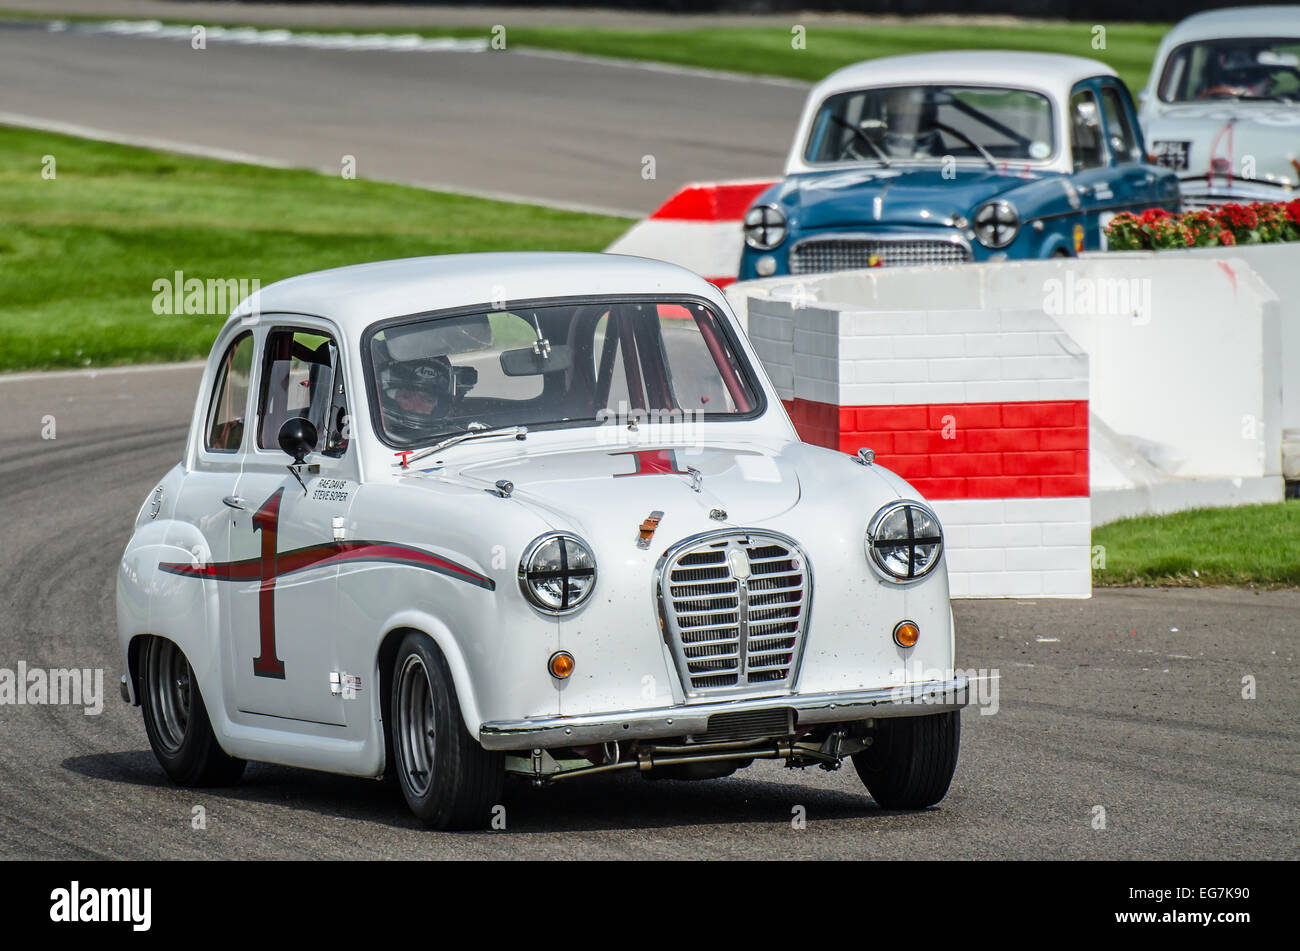 Austin A35 racing at the Goodwood Revival. Vintage motor car racing through the chicane Stock Photo